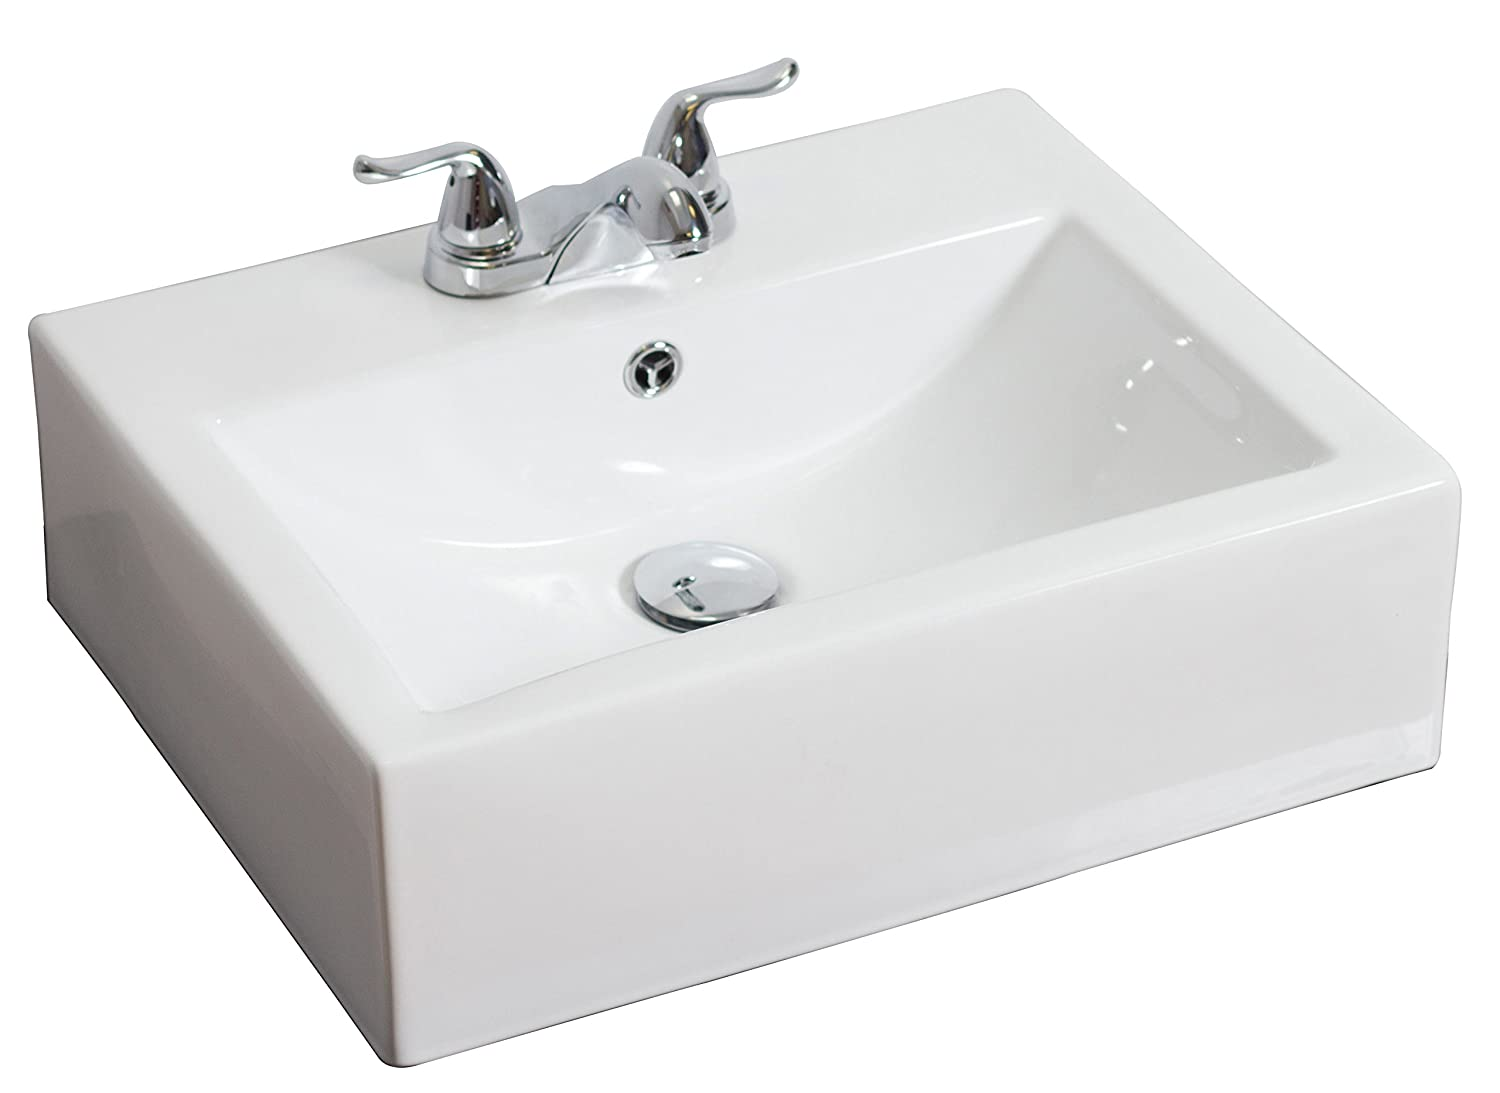 American Imaginations AI-12-593 Above Counter Rectangle Vessel for 4-Inch OC Faucet, 20.5-Inch x 16-Inch, White IMG Imports Inc.